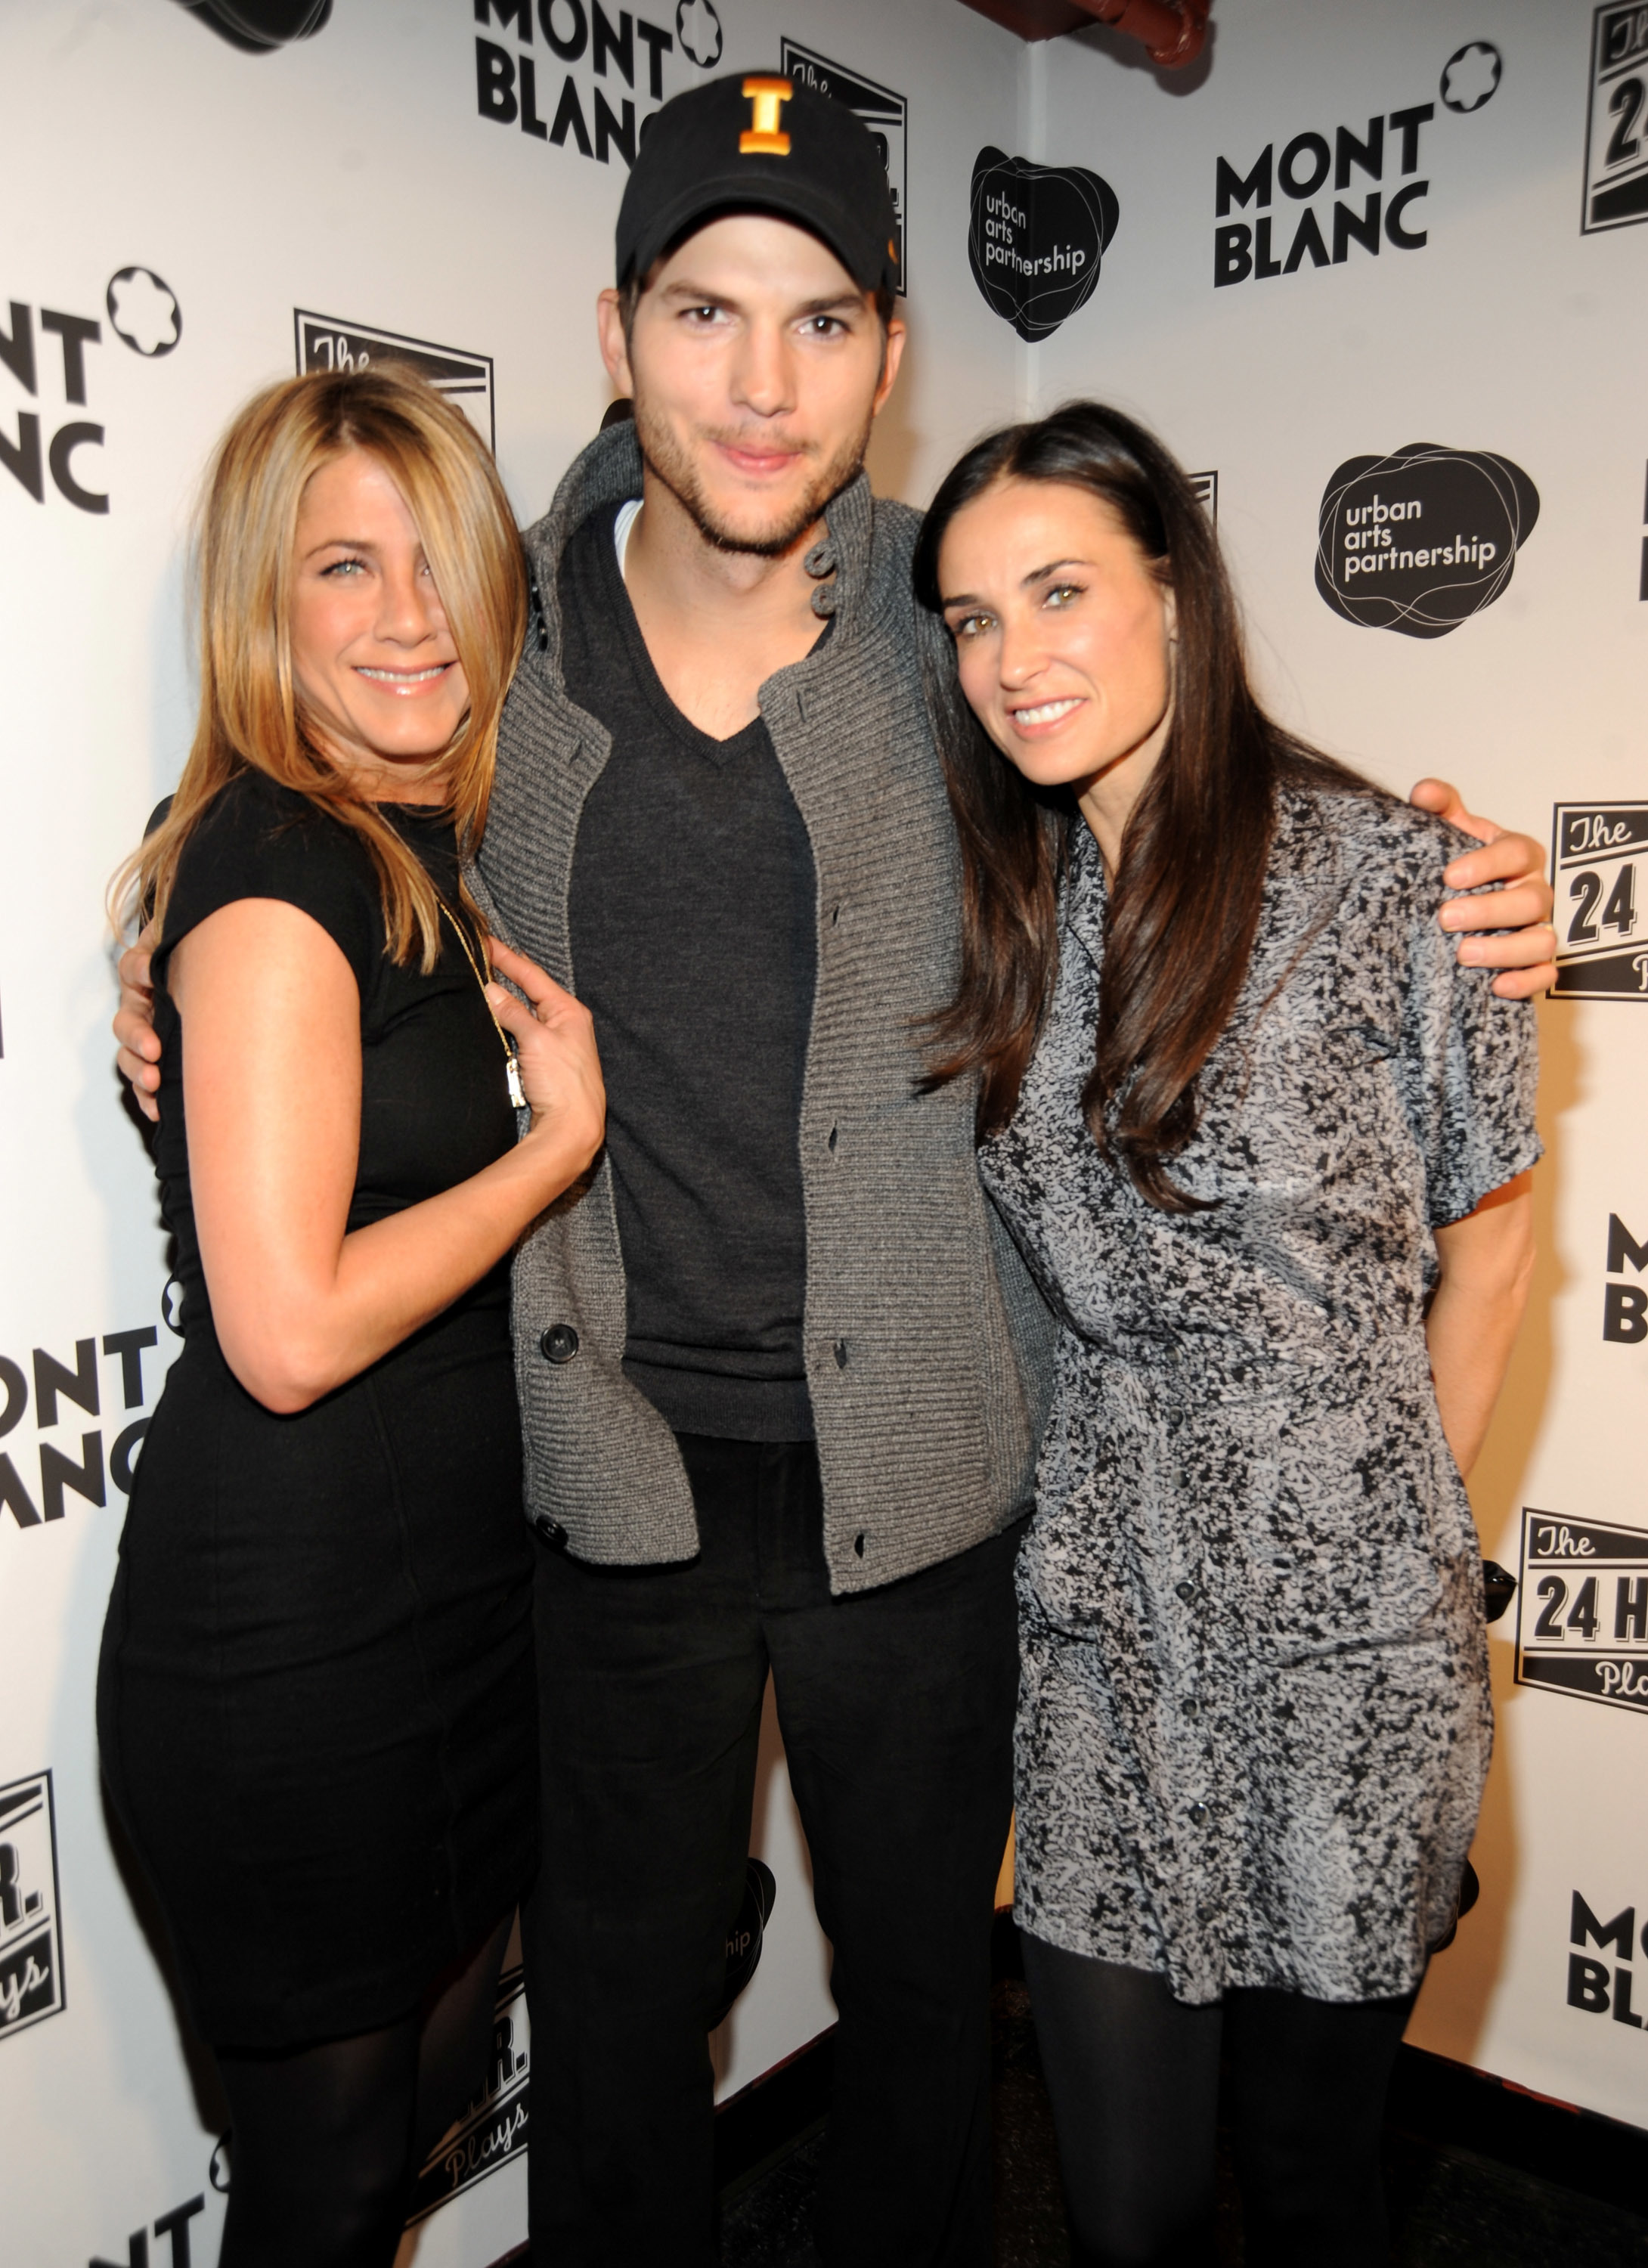 Jennifer Aniston, Ashton Kutcher and Demi Moore walk the red carpet at the 9th Annual 24 Hour Plays on Broadway After Party presented by MONTBLANC at The Opera Ballroom at Crest in New York City on Nov. 10, 2009.